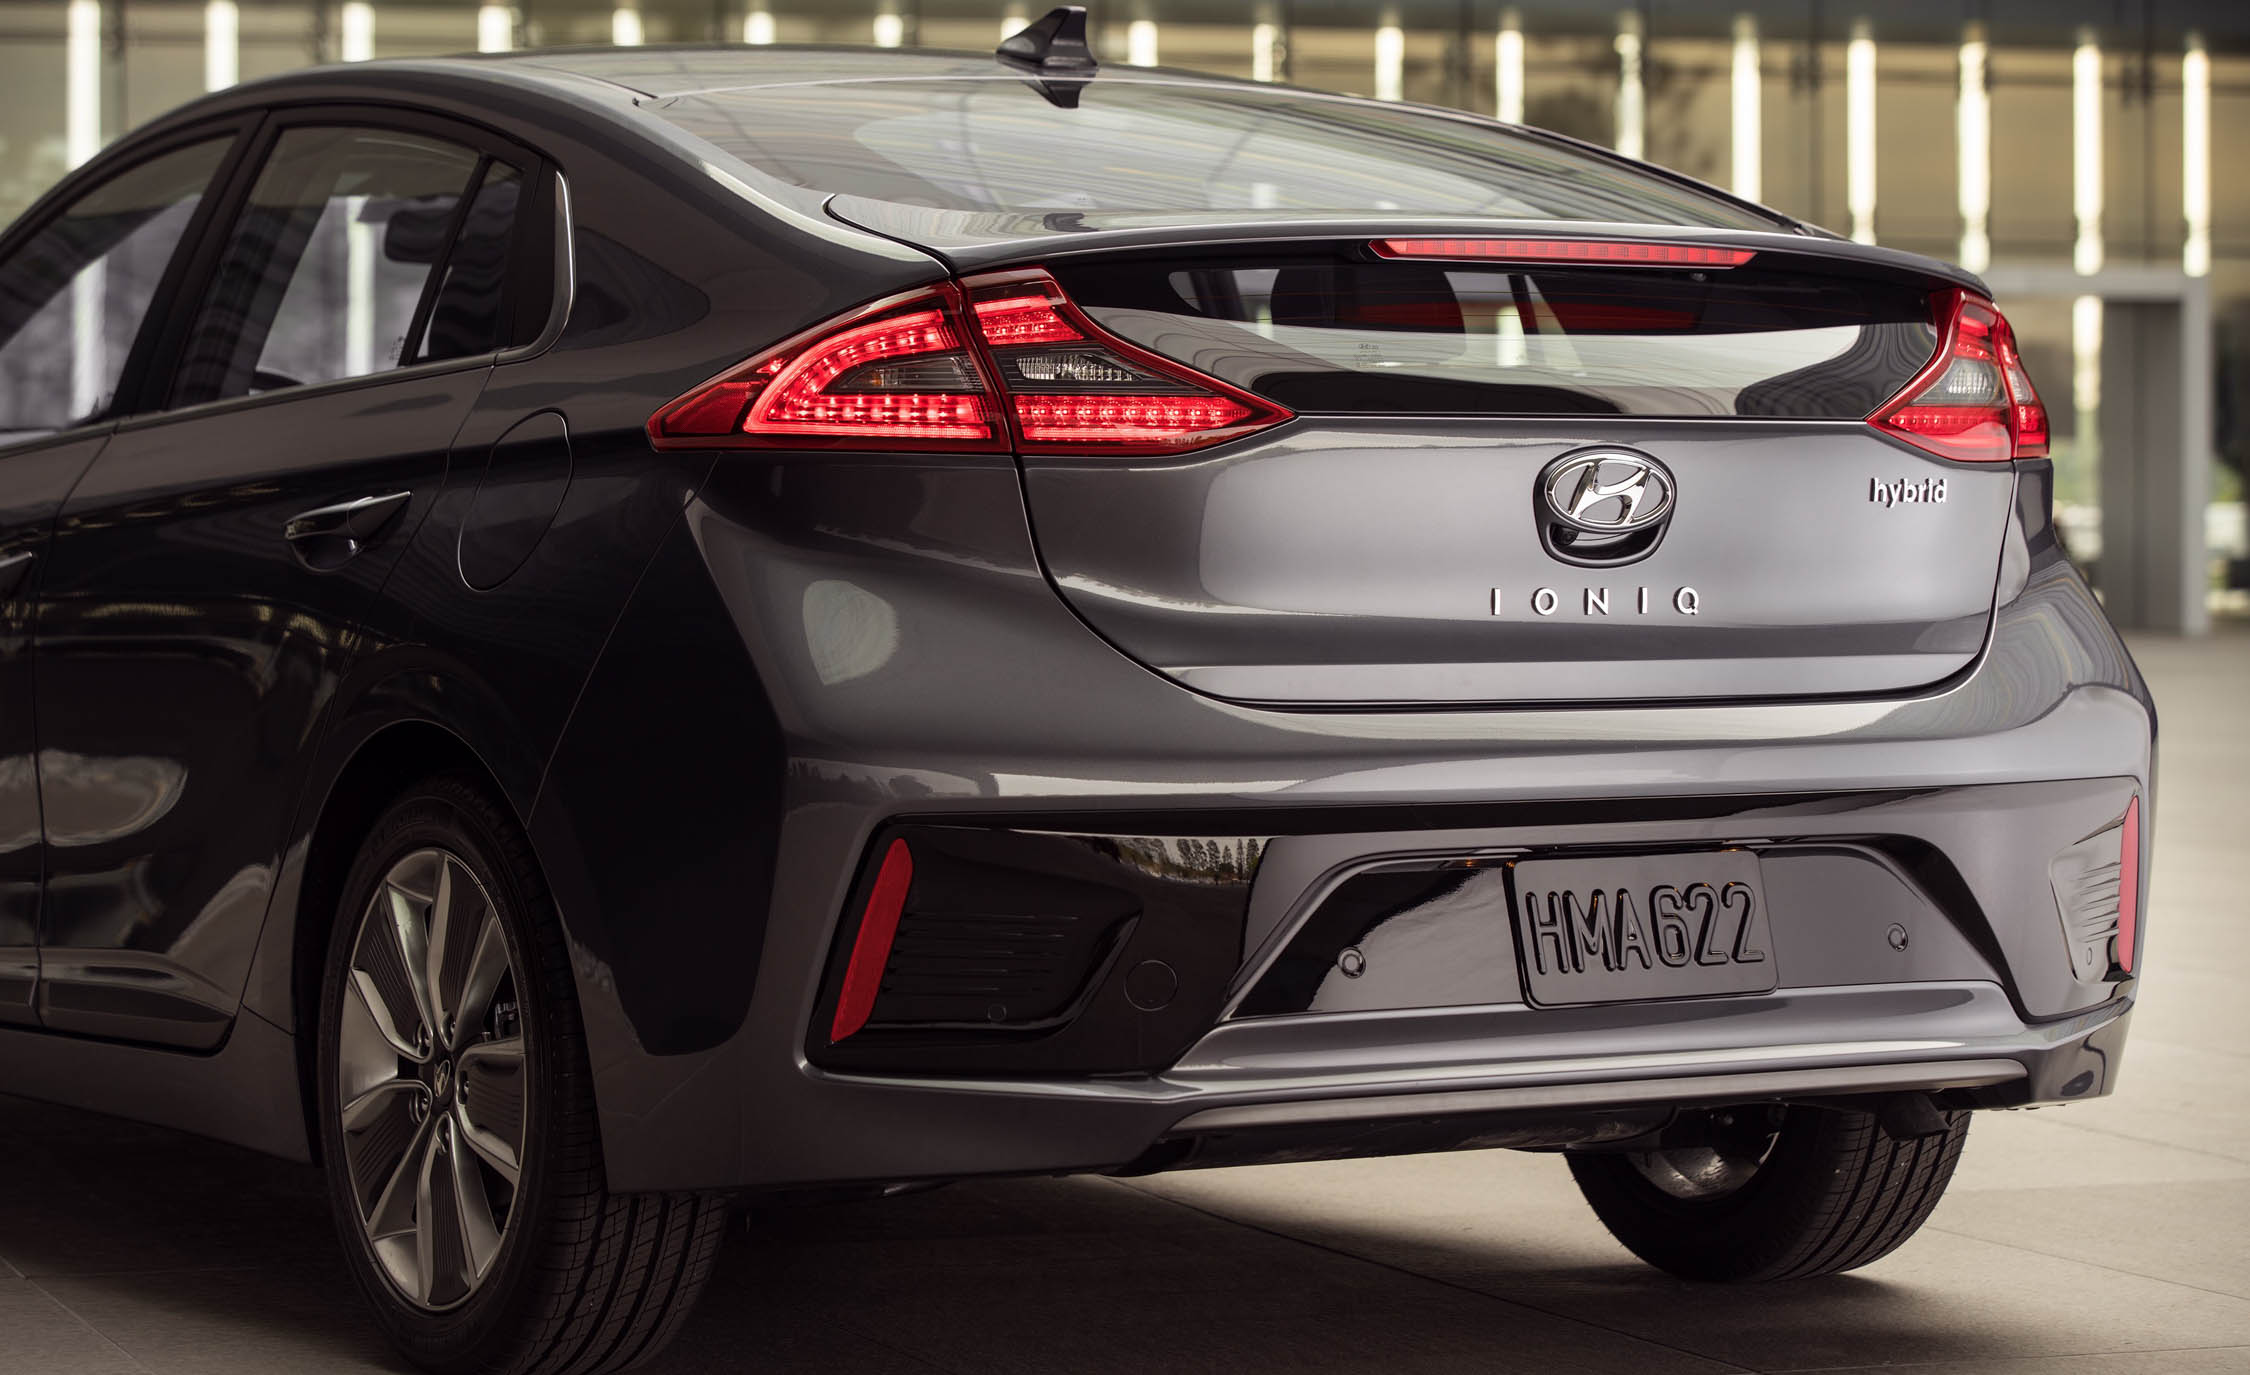 2017 Hyundai Ioniq Hybrid Exterior View Bumper Rear (Photo 44 of 67)